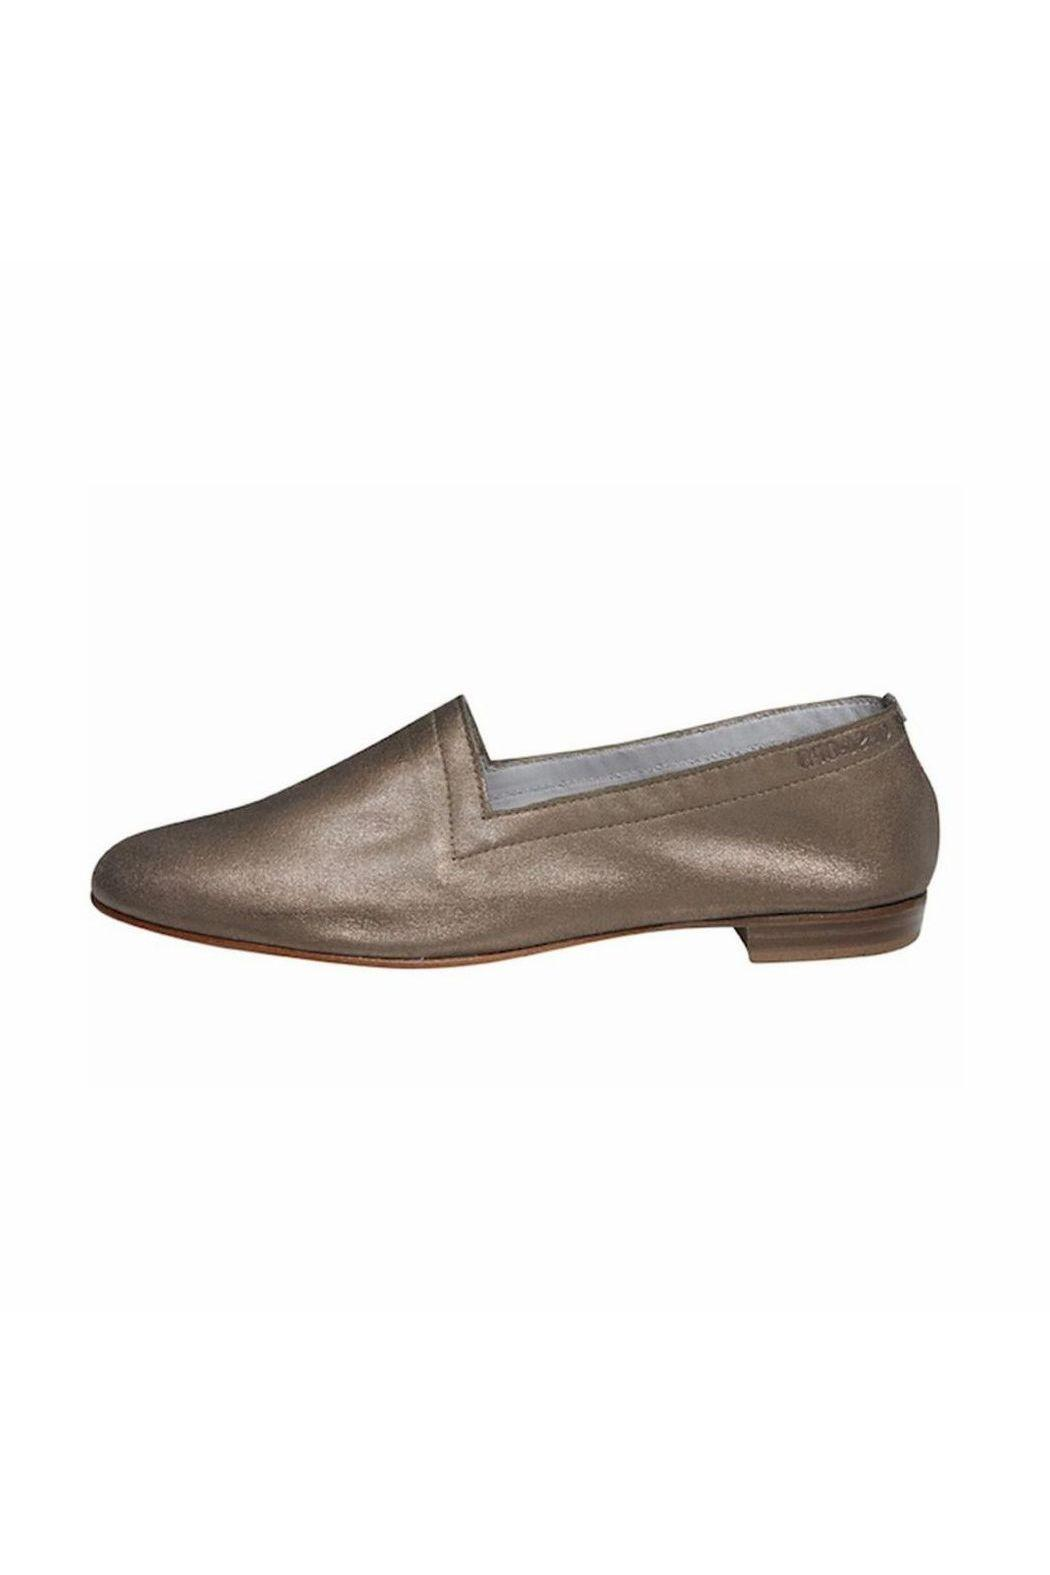 OPS&OPS Bronze Soft-Leather Flat - Main Image